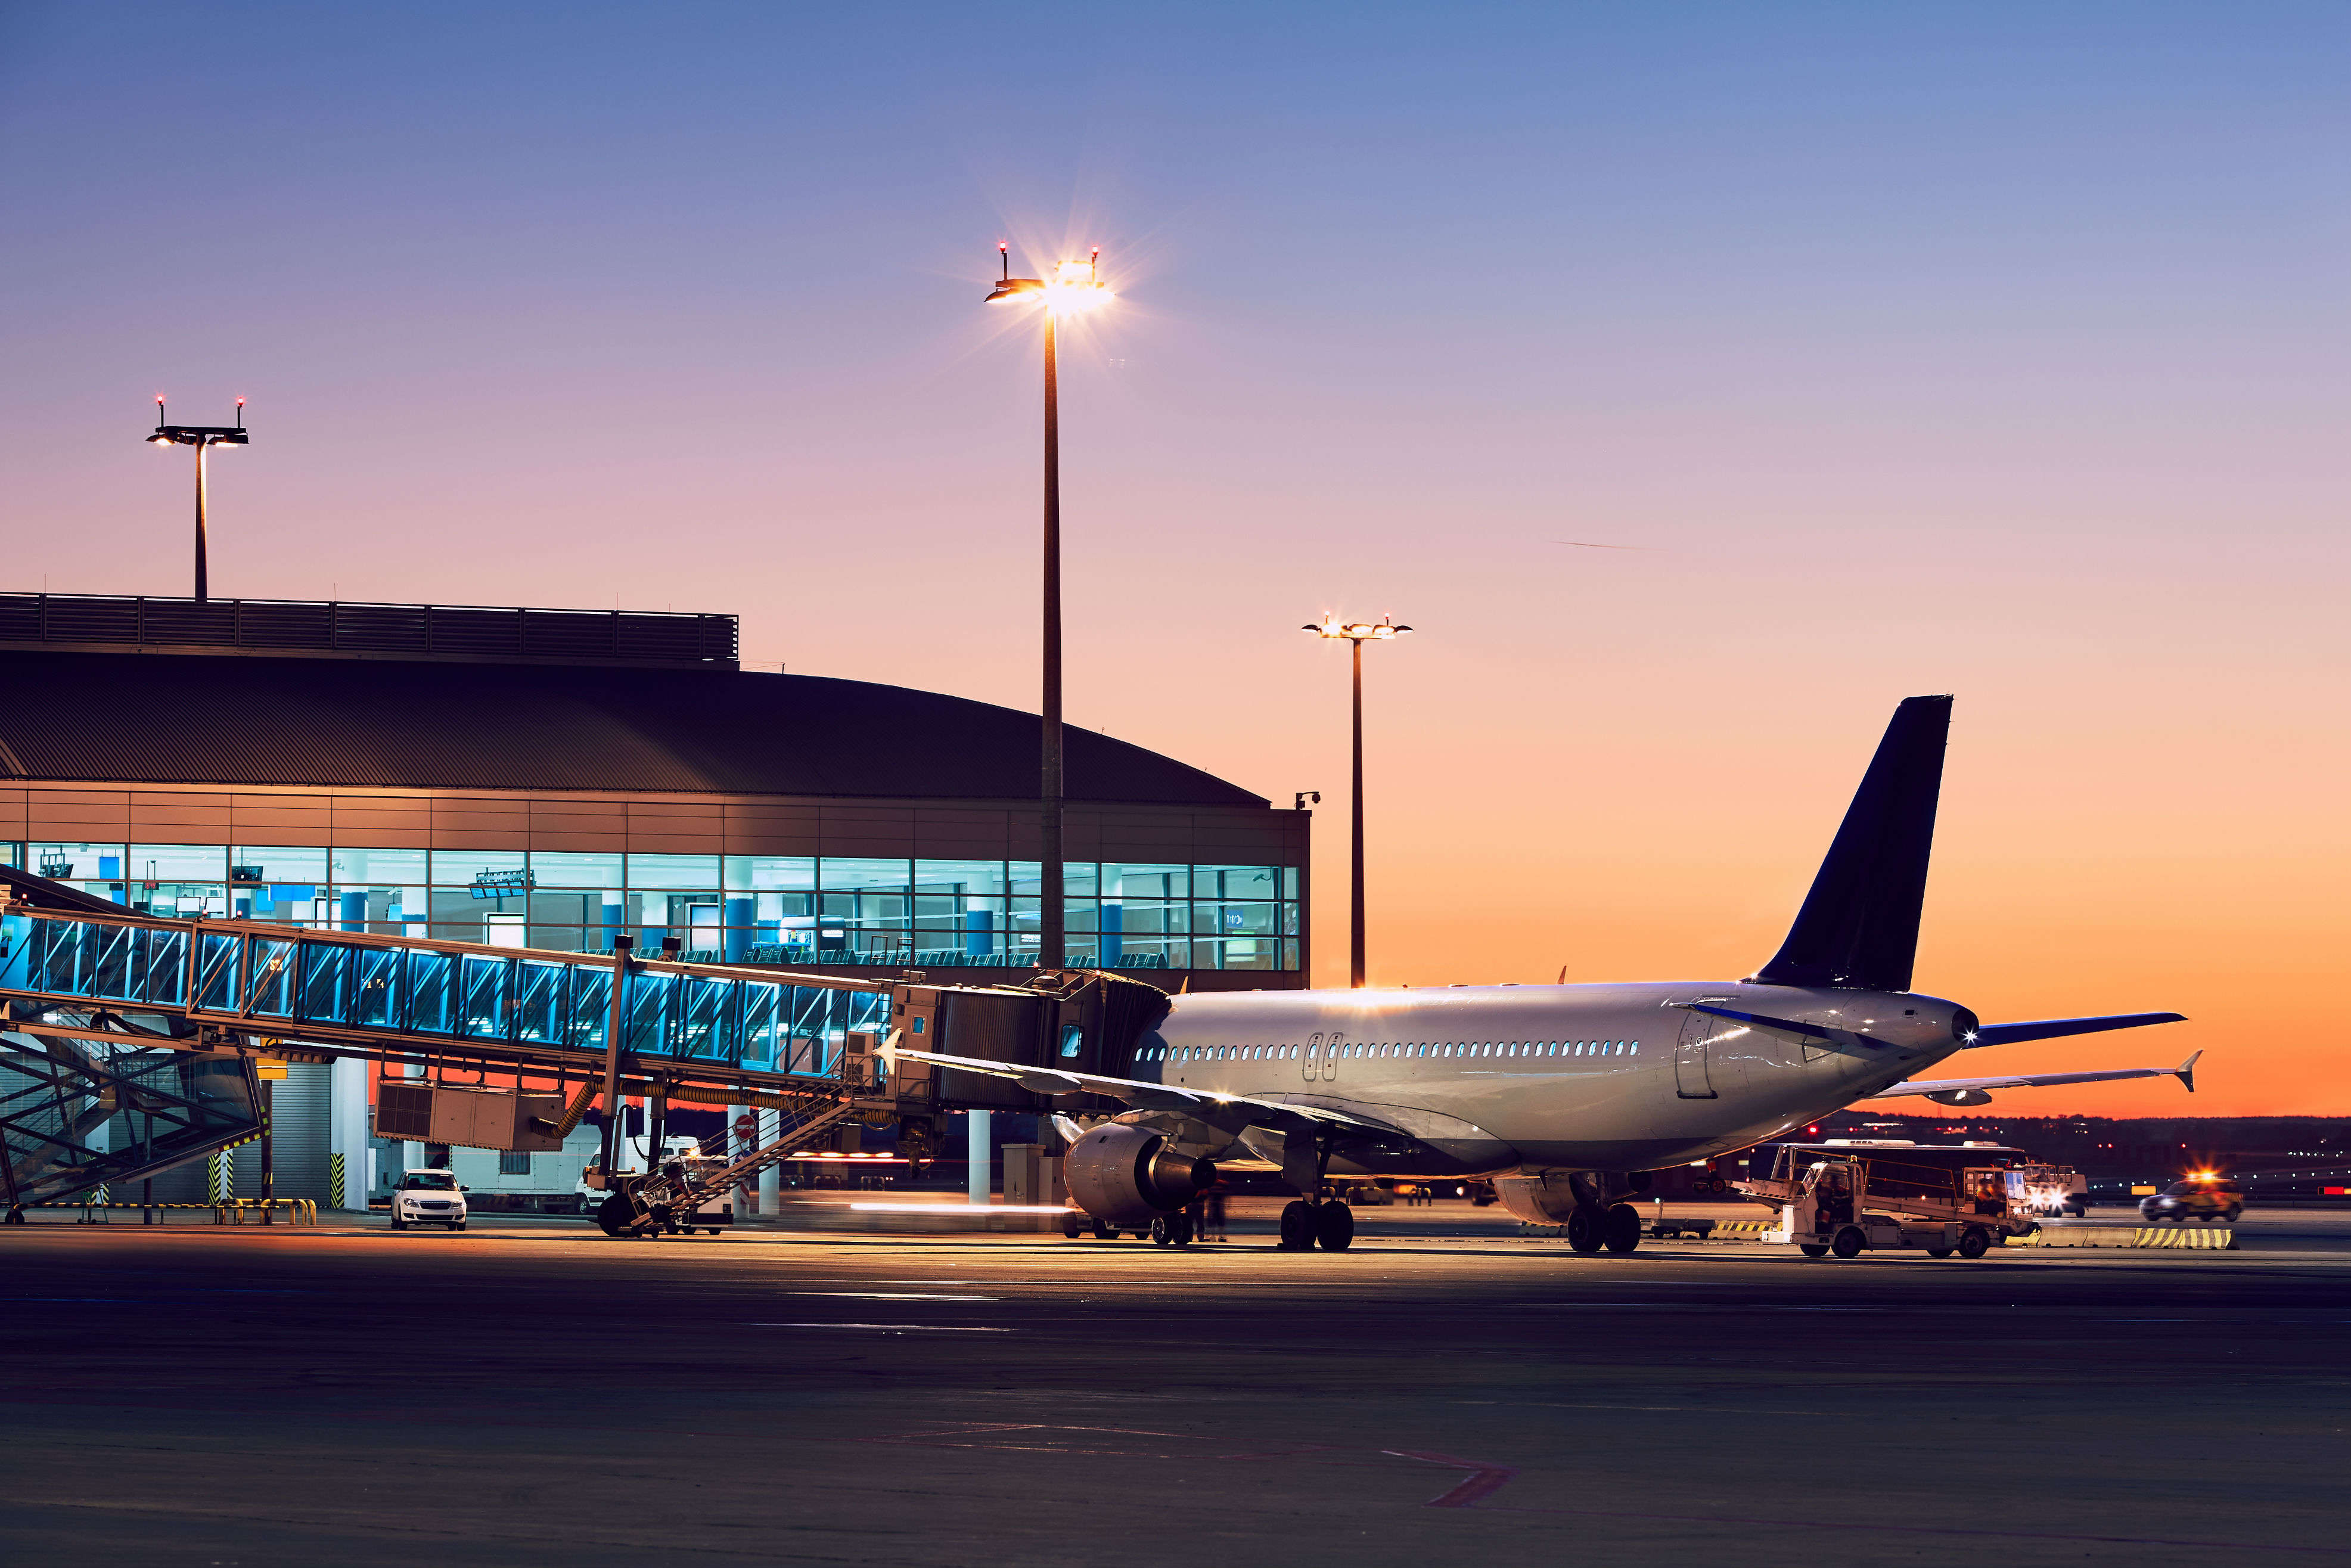 India is aiming to build 100 new airports by 2024